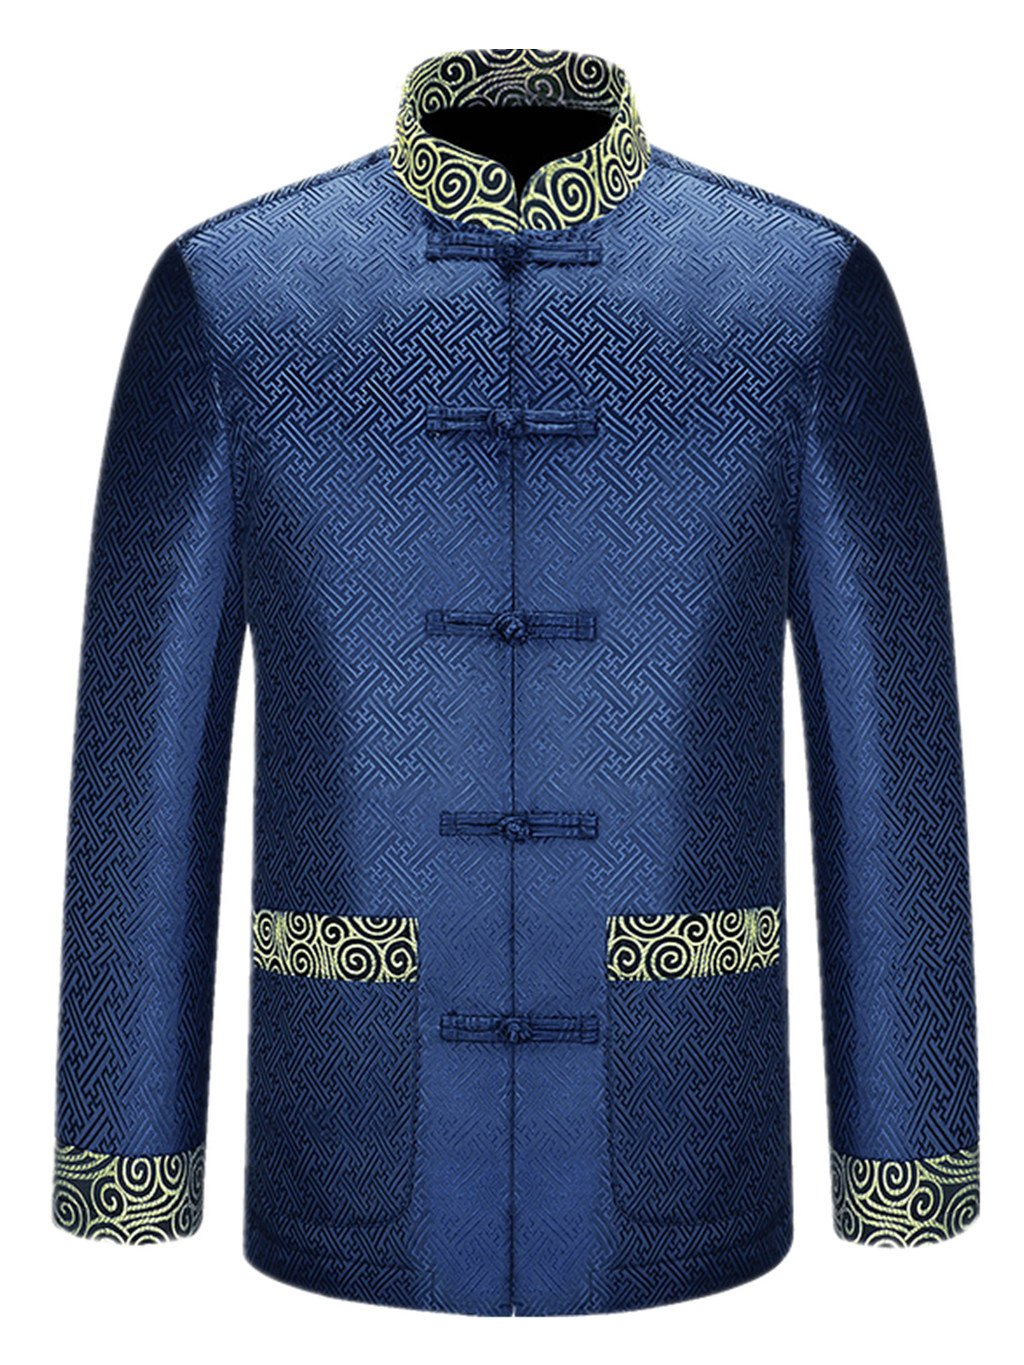 High-end Tang Suit National Costume Individuality Retro Jackets Coats Men's Dress Full Dress (golden)